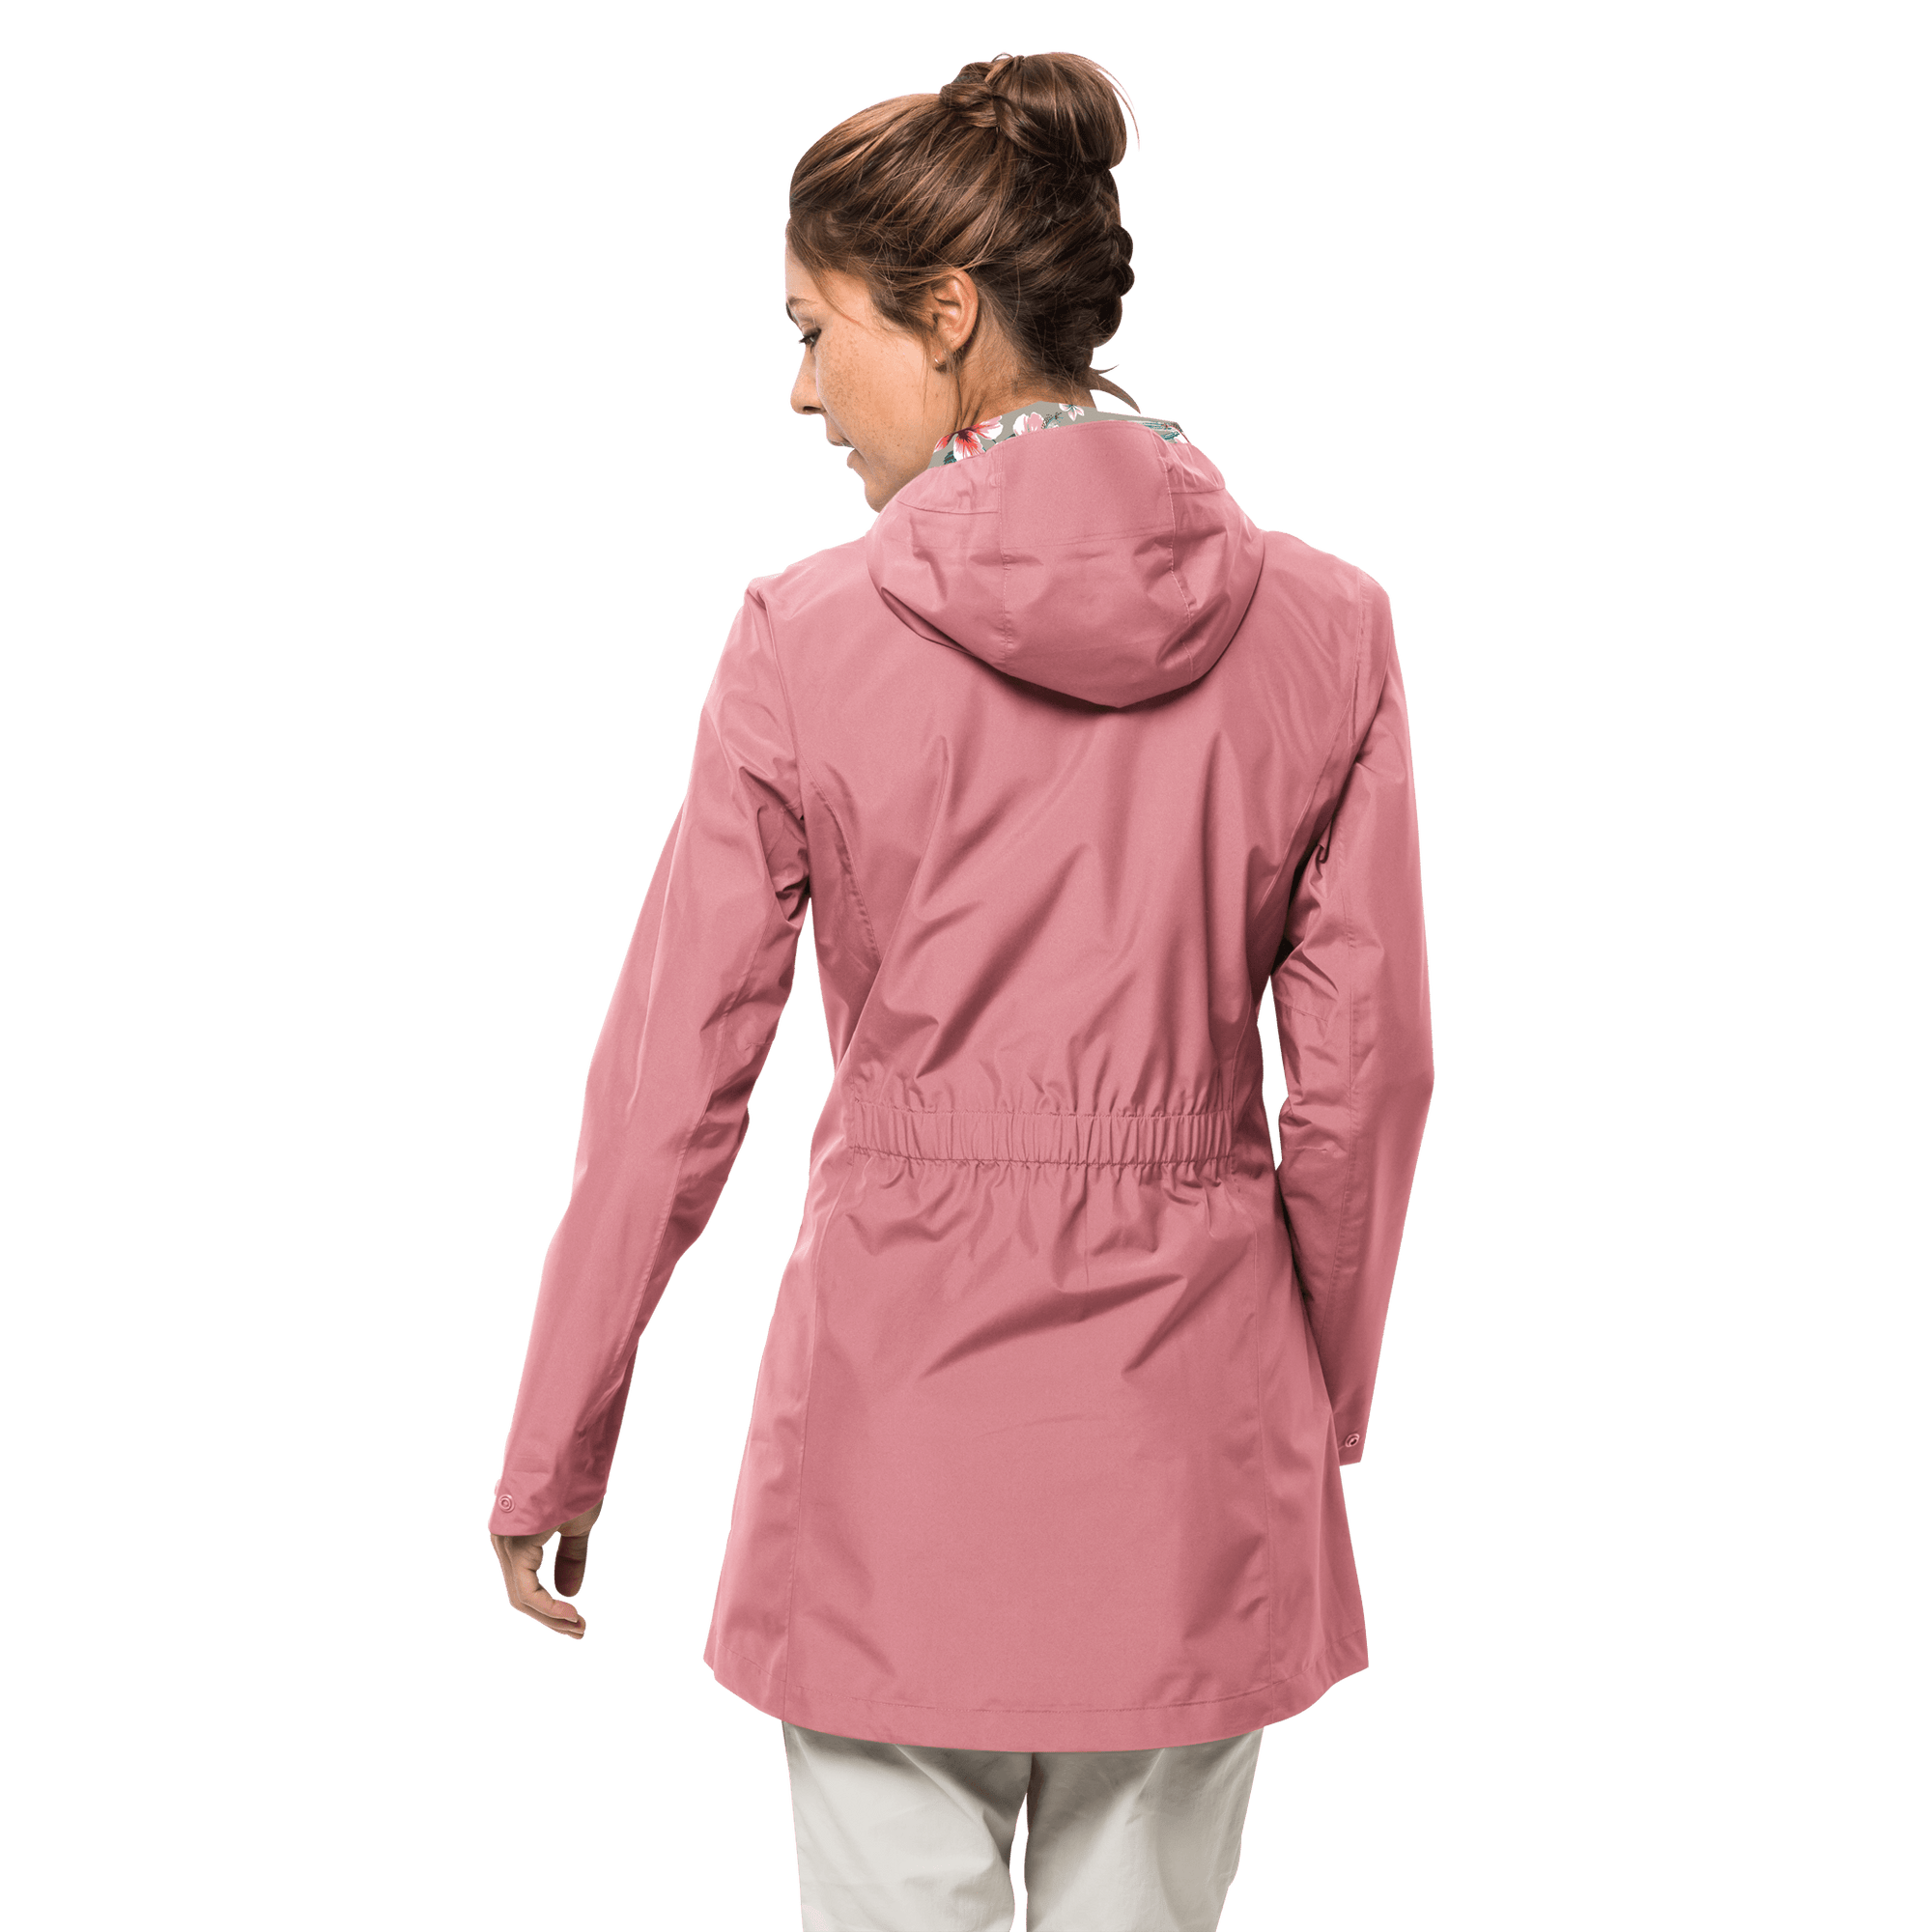 c1e3a6bb9 Women's CAPE YORK COAT - Rose - Waterproof coat from 100% recycled ...